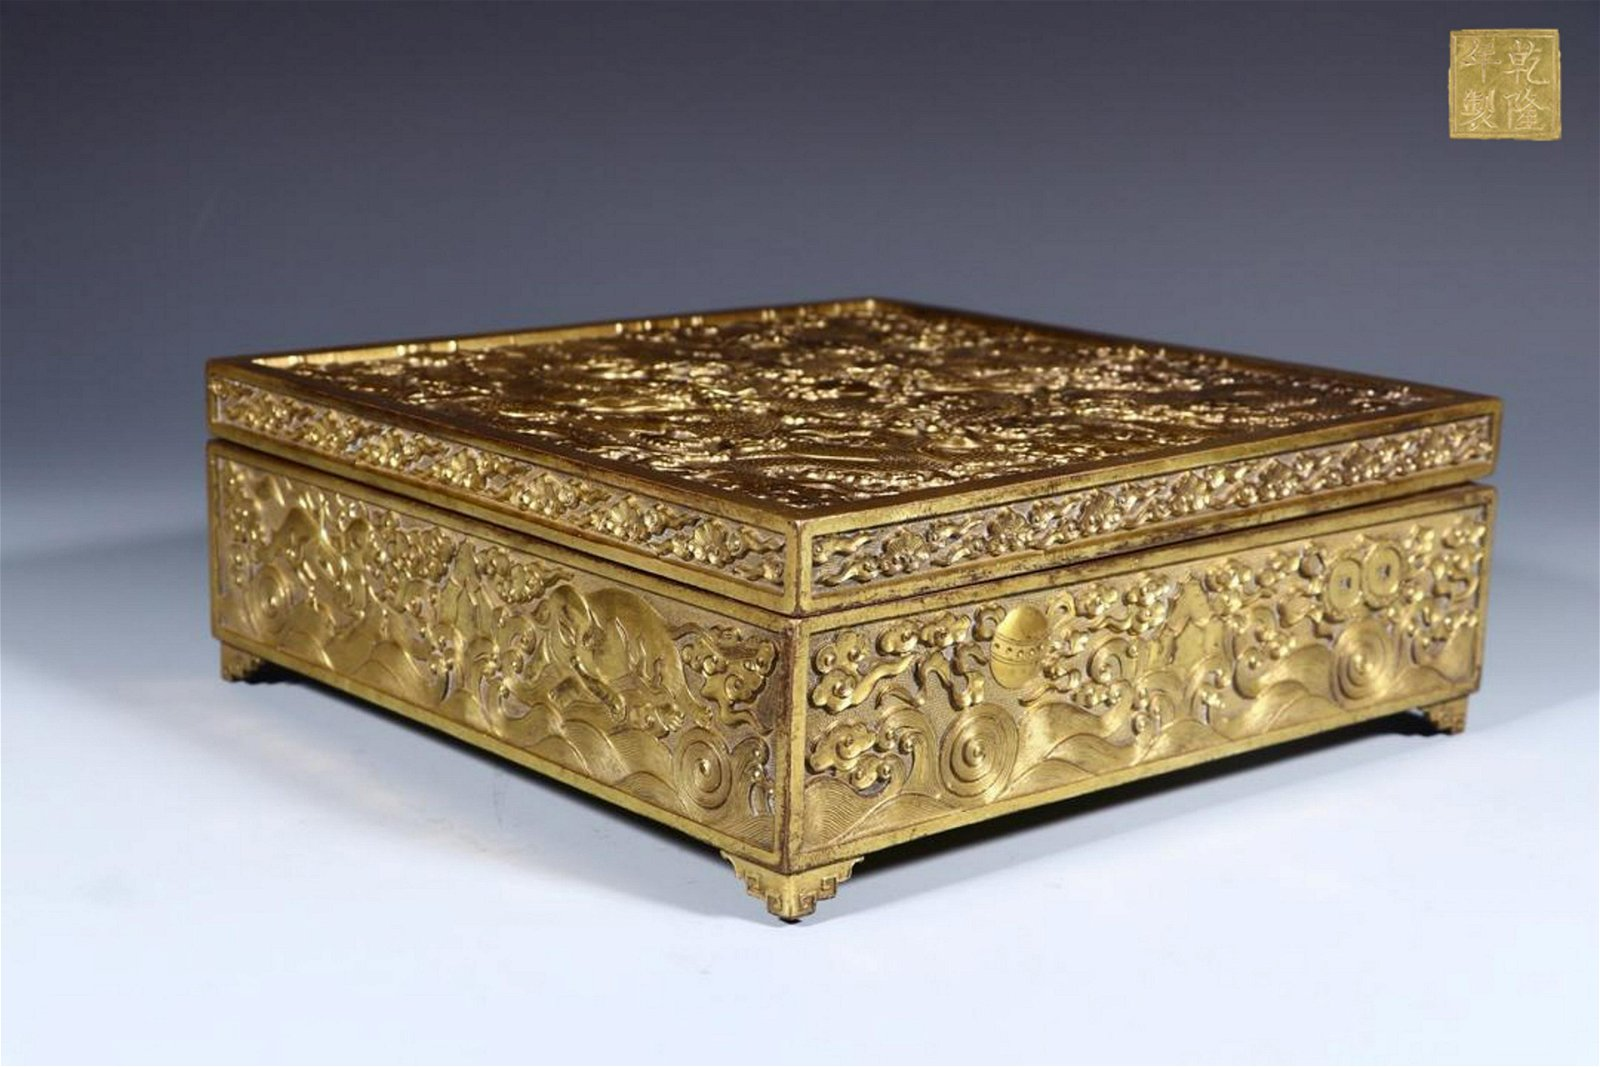 A QIANLONG MARK GILT BRONZE BOX WITH DRAGON CARVED